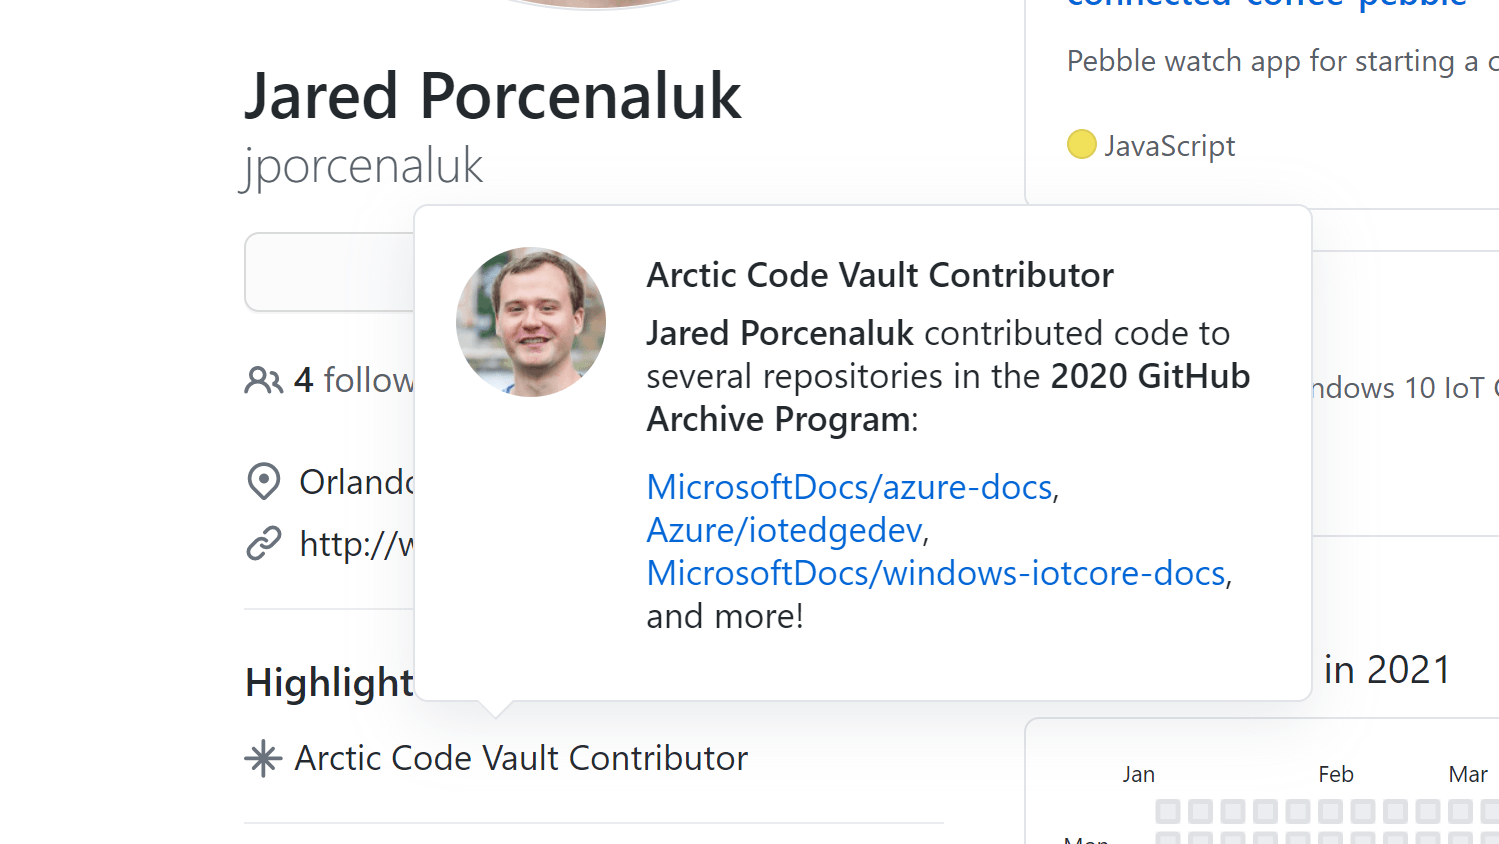 Jared Porcenaluk is an Arctic Code Vault Contributor, and some of the things he's written is stored in a vault above the arctic circle. Technically closer to the North Pole than the Arctic Circle.